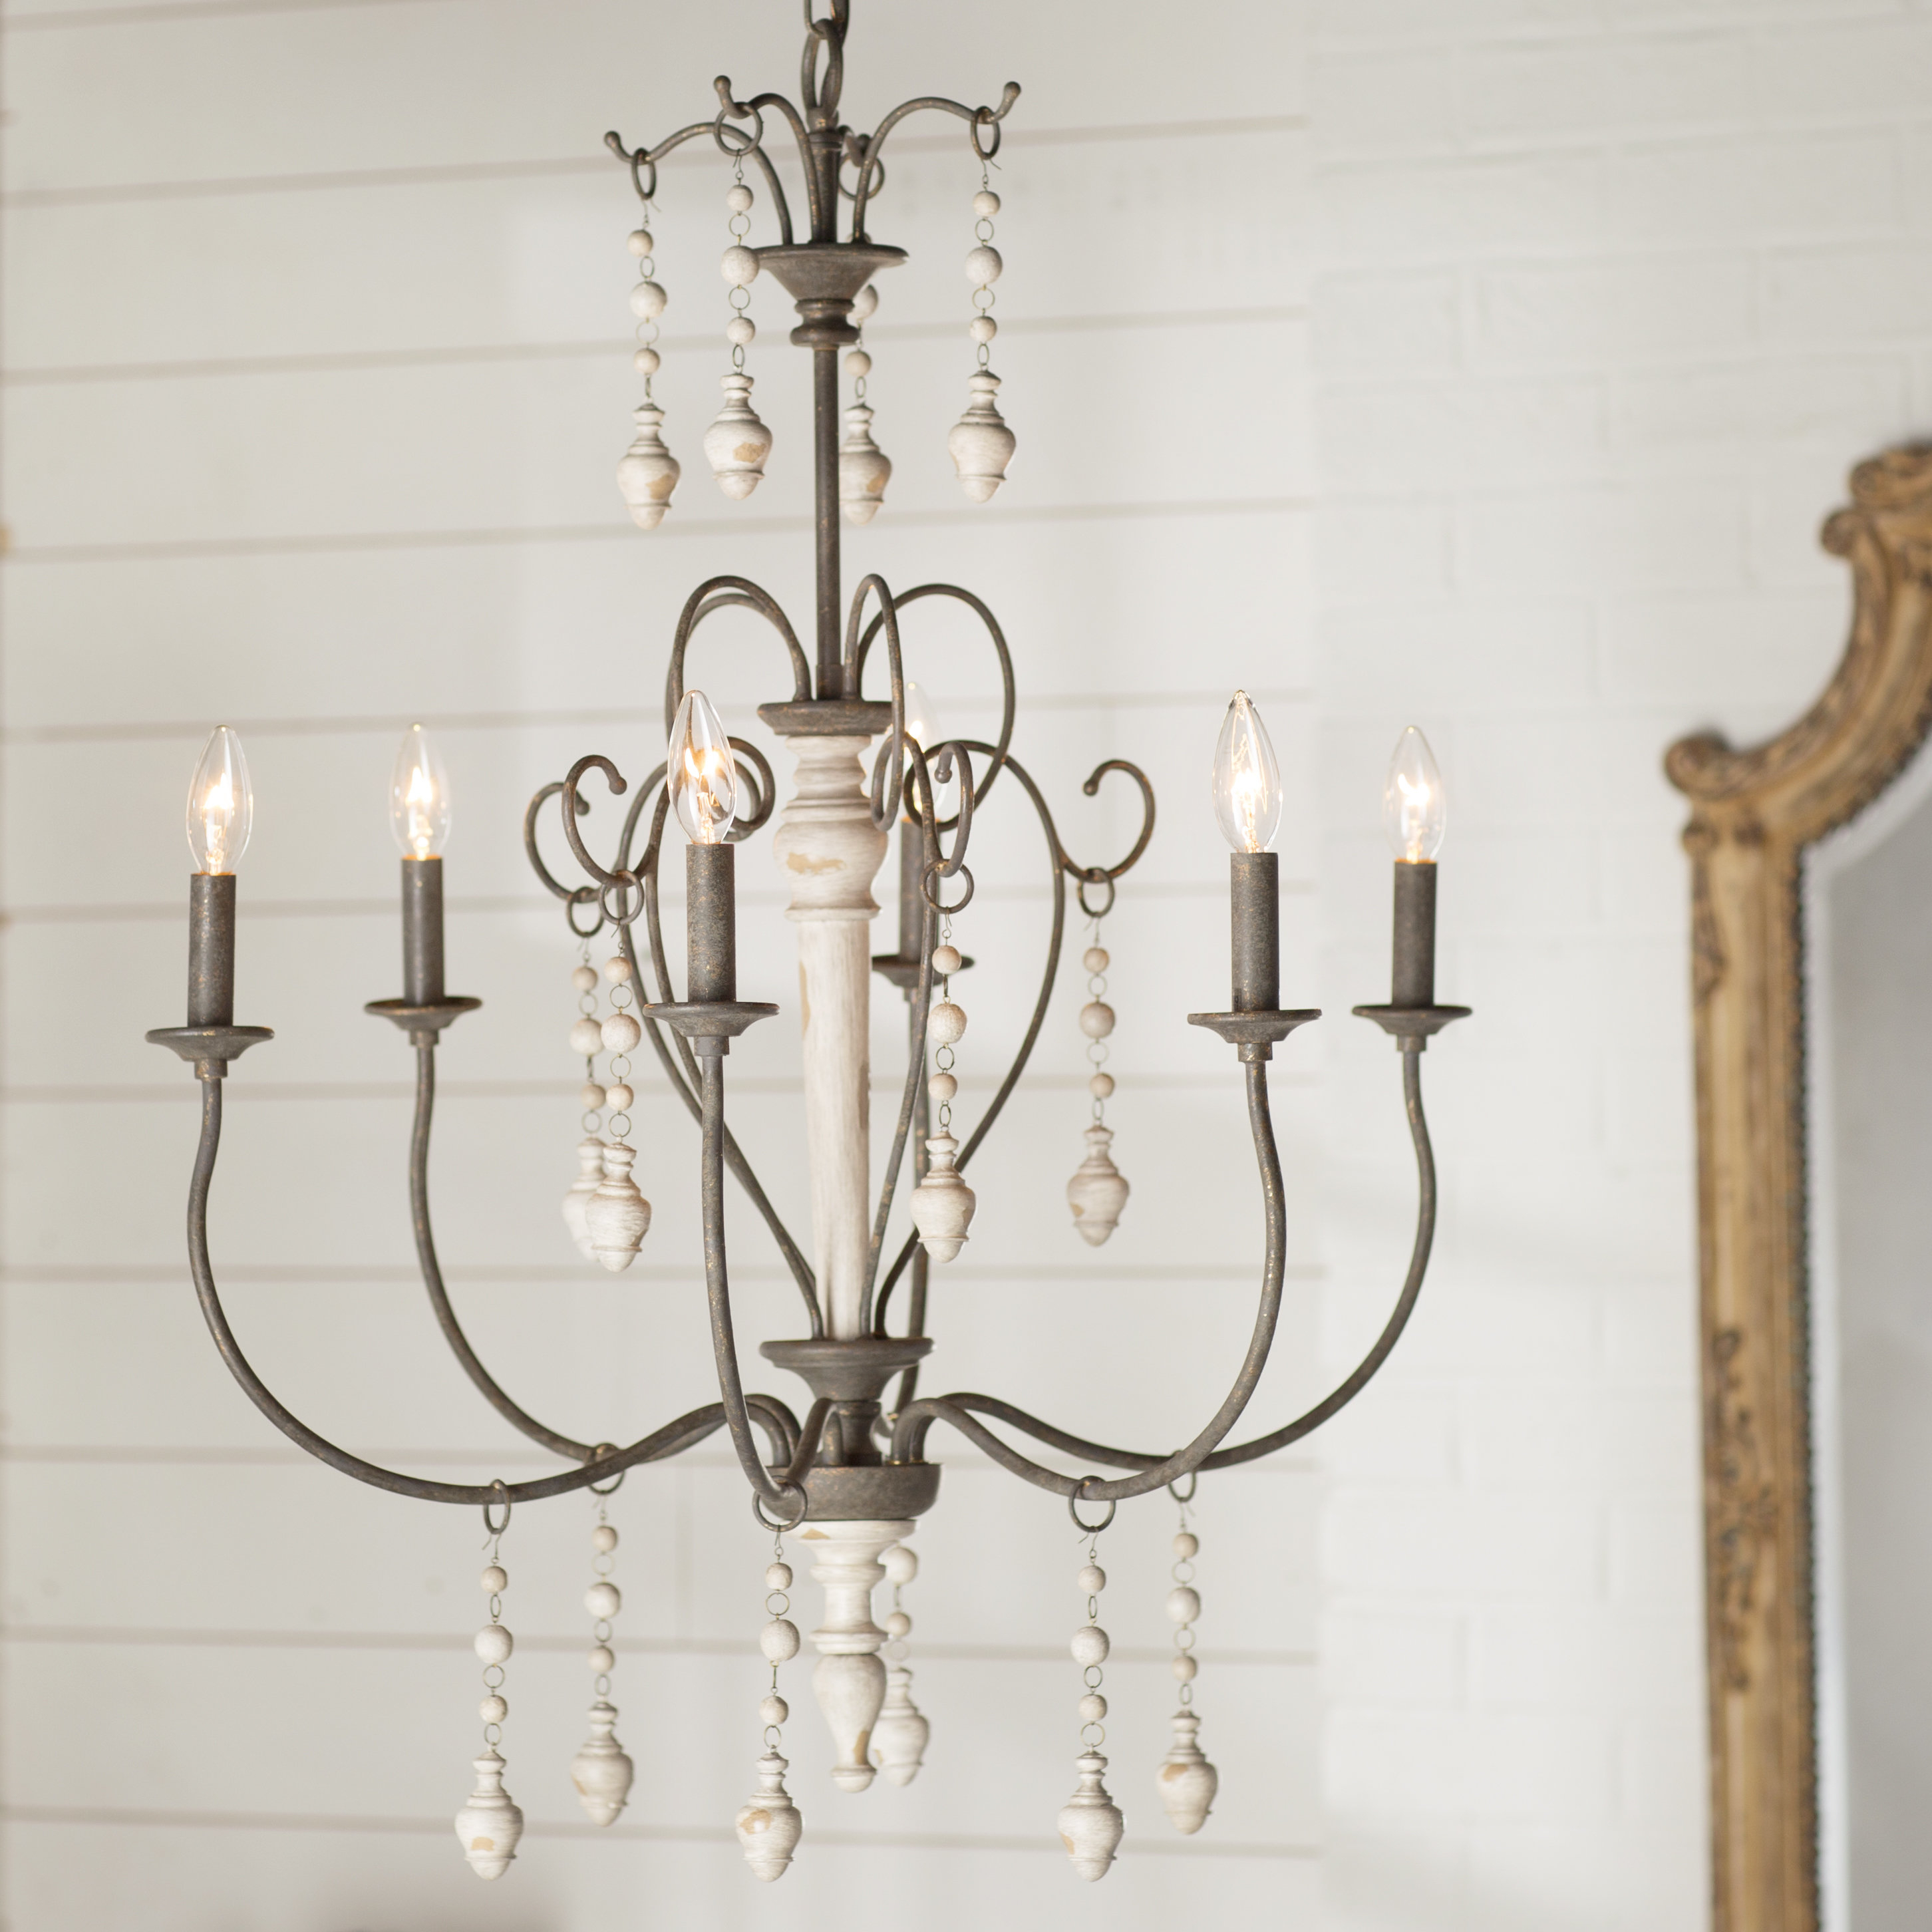 Bouchette Traditional 6 Light Candle Style Chandelier Regarding Famous Shaylee 8 Light Candle Style Chandeliers (View 6 of 25)